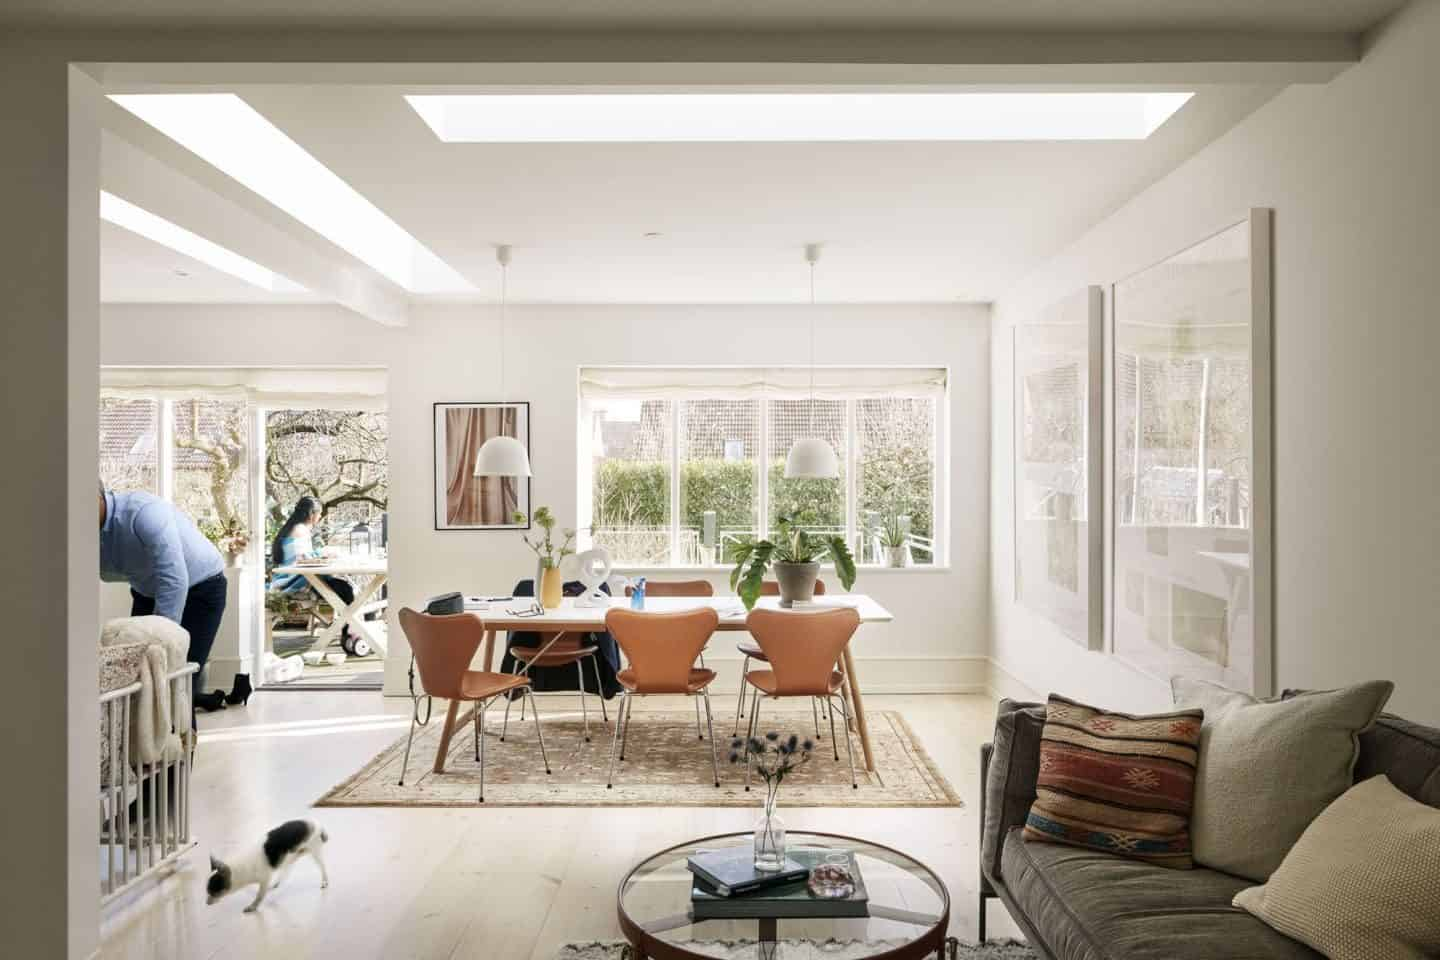 Vario by VELUX Bespoke Flat Roof Windows pictured above a dining room table and small seating area.